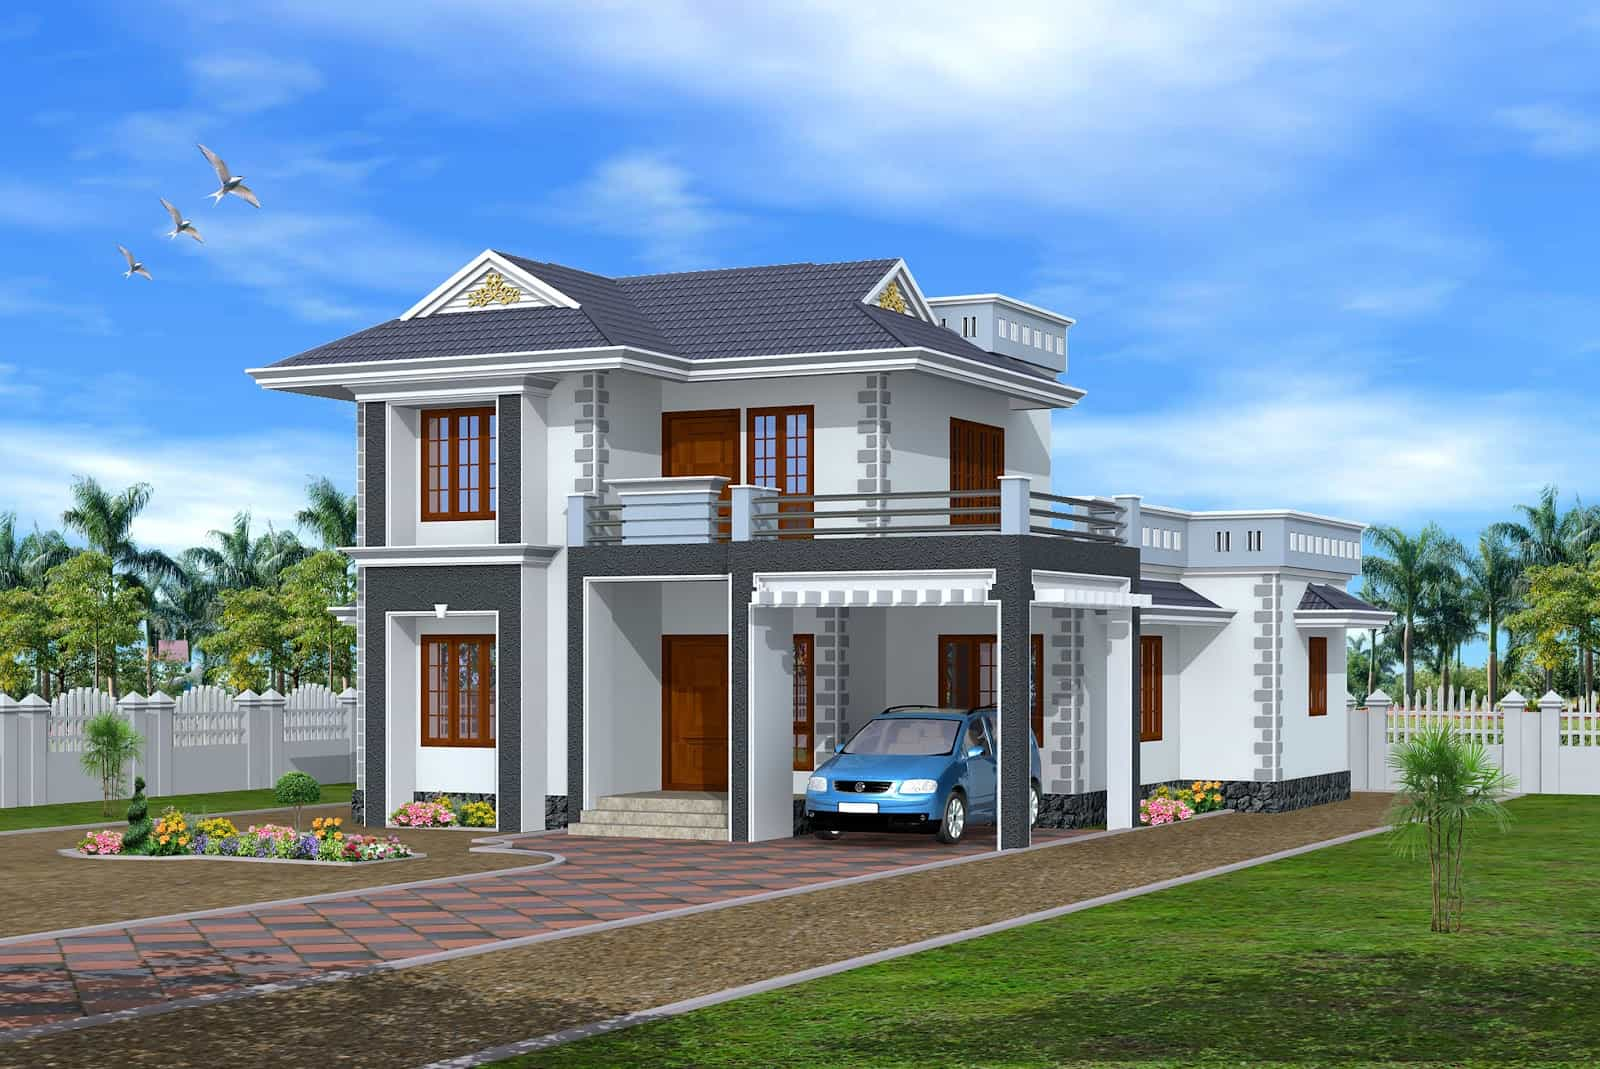 3d exterior design kerala house. Black Bedroom Furniture Sets. Home Design Ideas